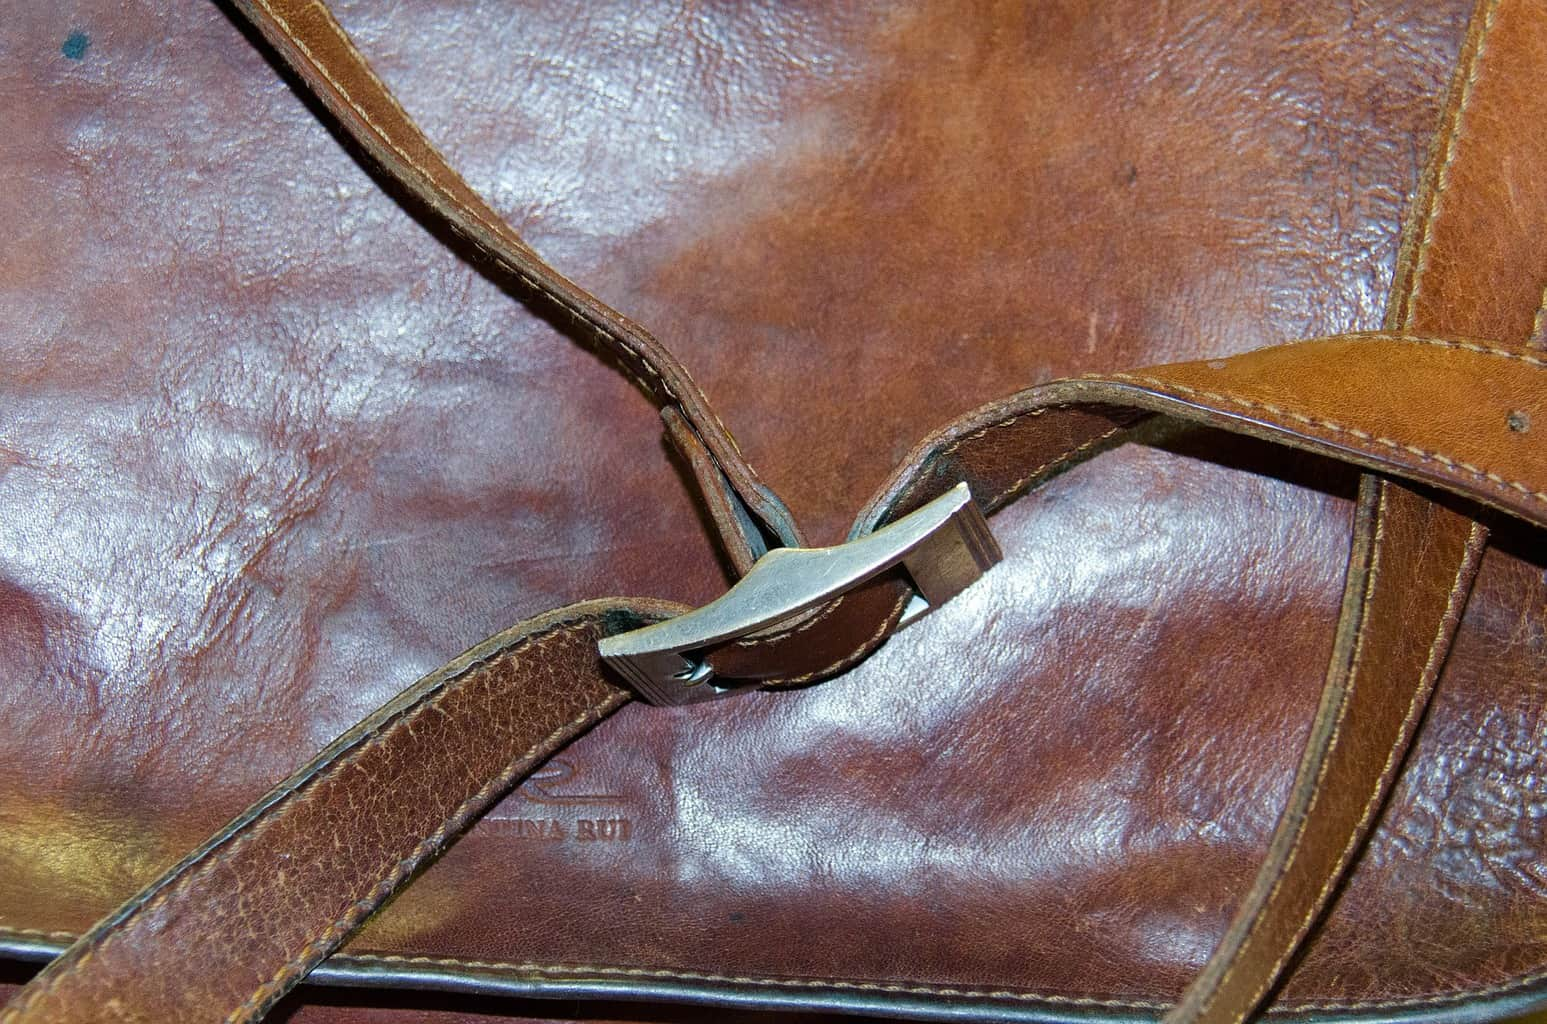 Water stain from leather bag in need of cleaning